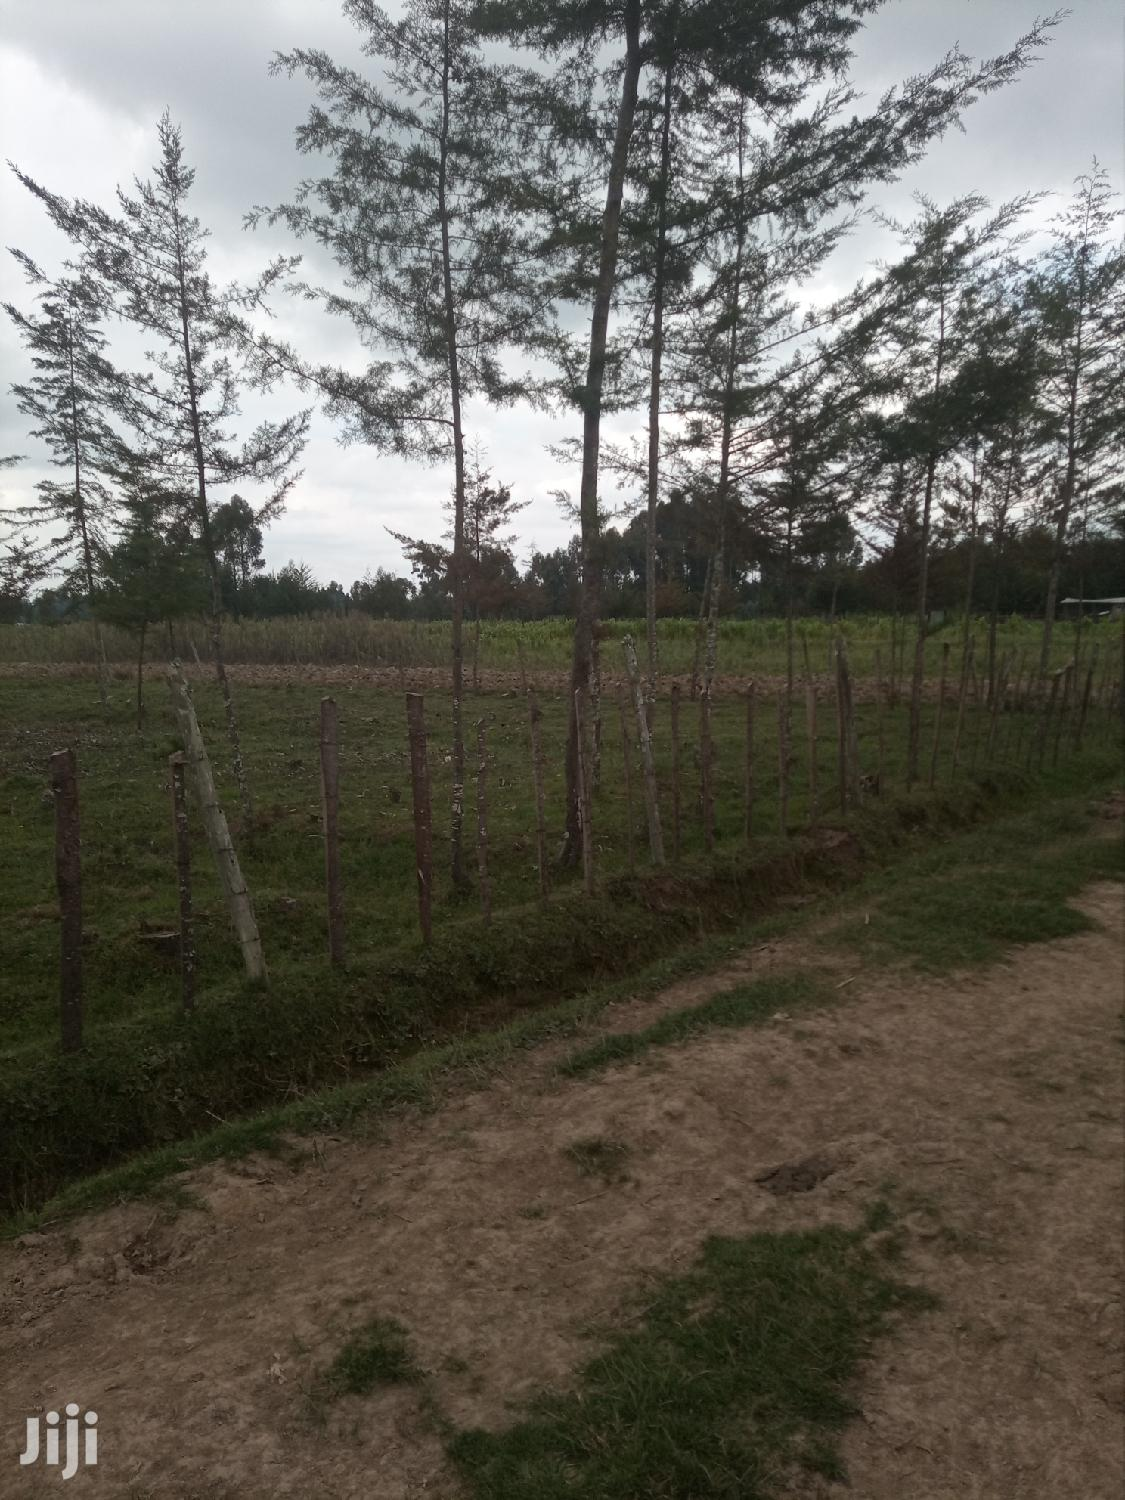 200acrs Molo Nakuru Ideal 4 Agribusiness 270m Only as Whole